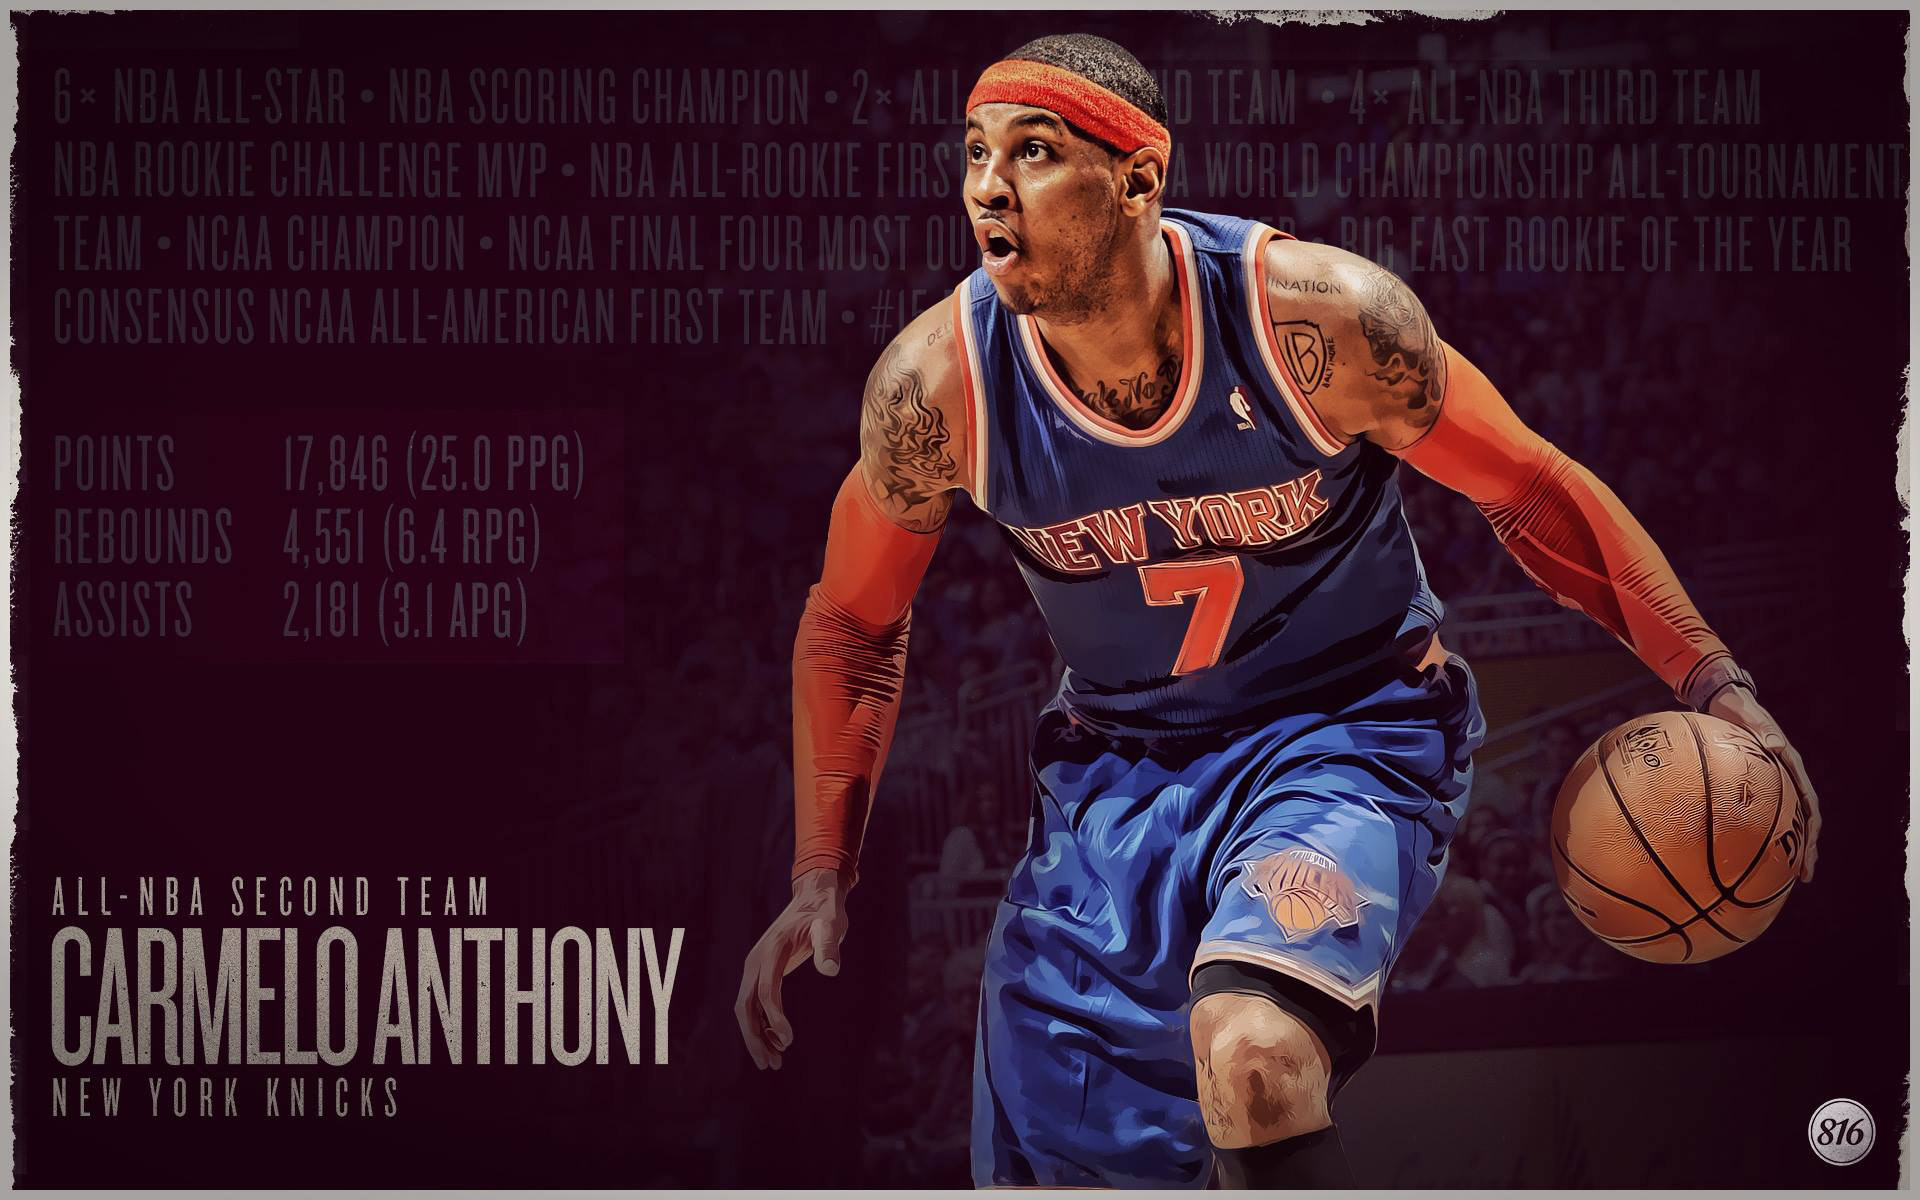 carmelo anthony wallpaper 2018 73 images